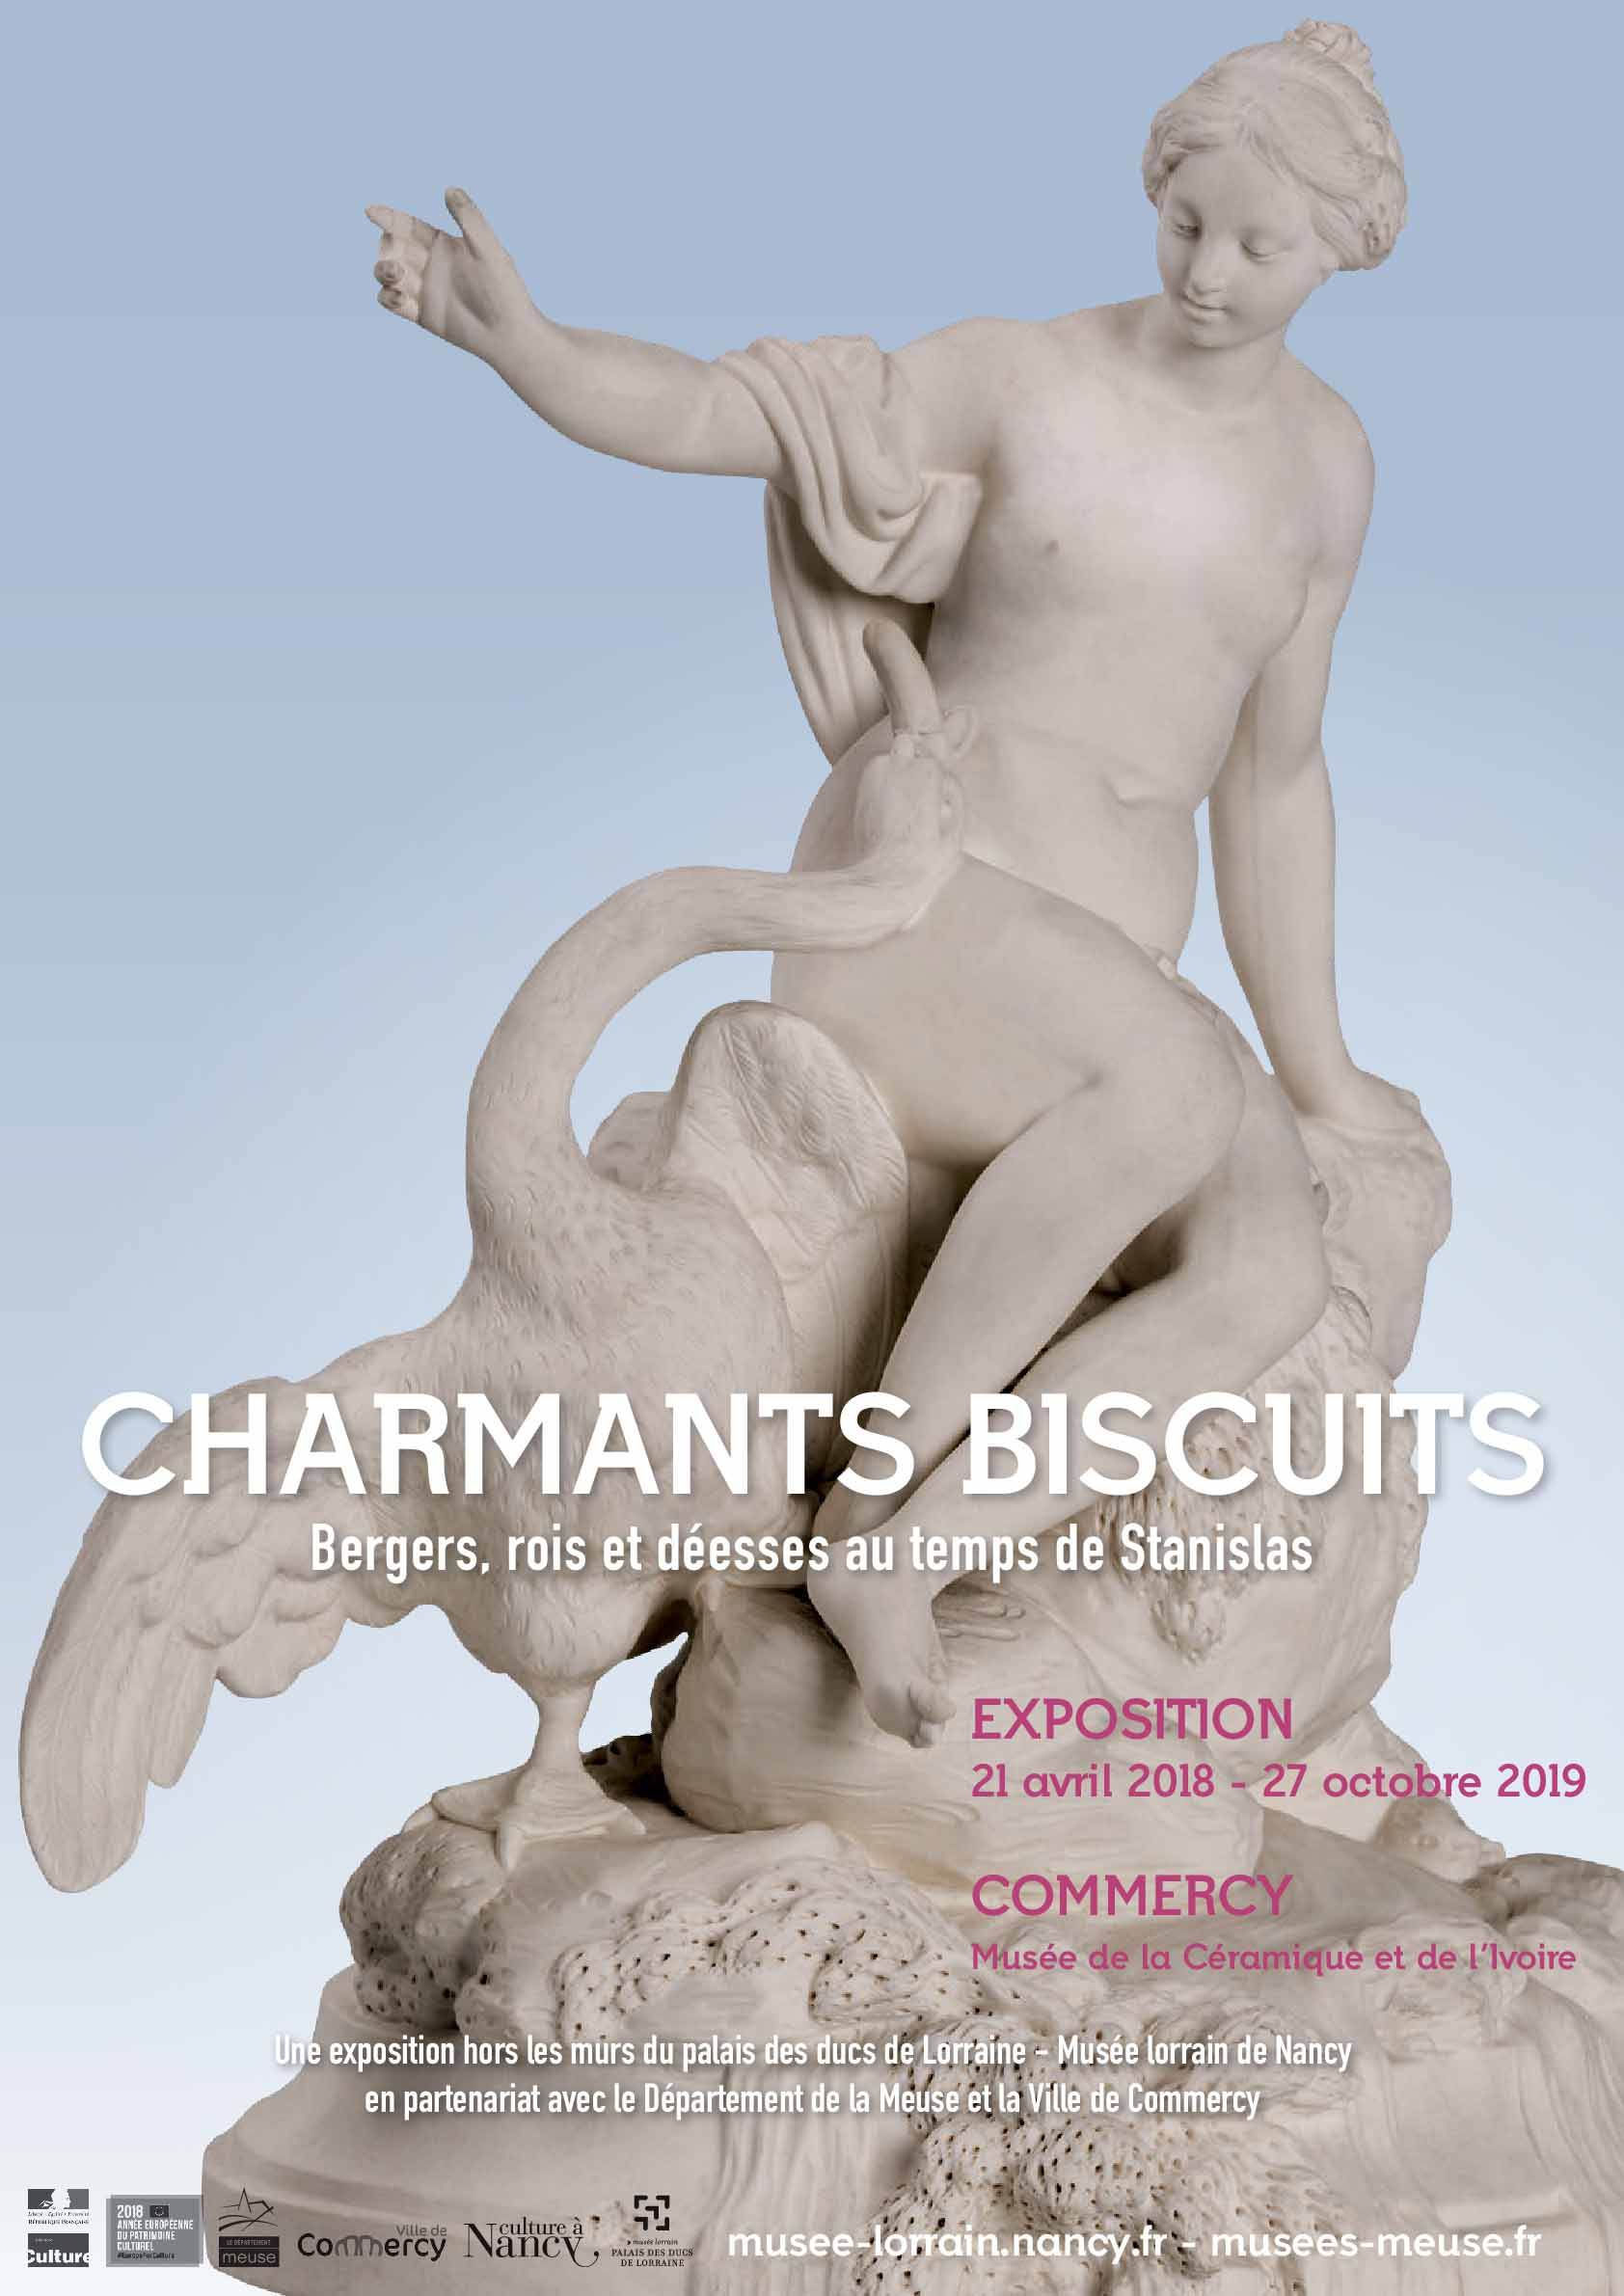 EXPOSITION CHARMANTS BISCUITS